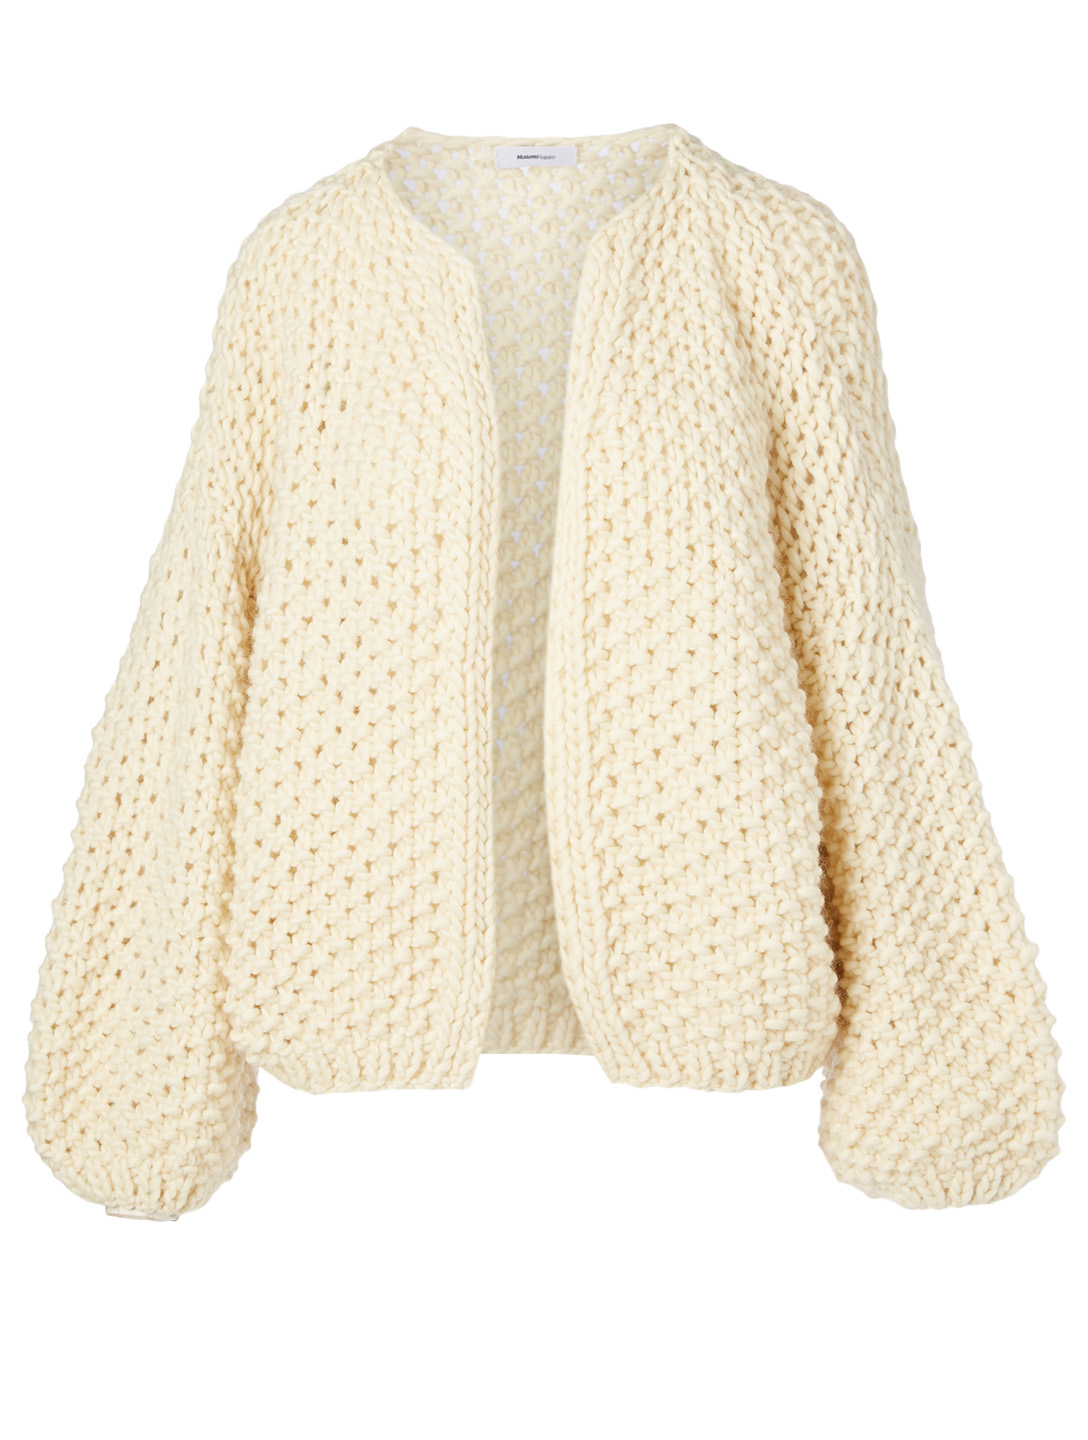 MAIAMI Big Pearl Pattern Merino Wool Cardigan H Project White